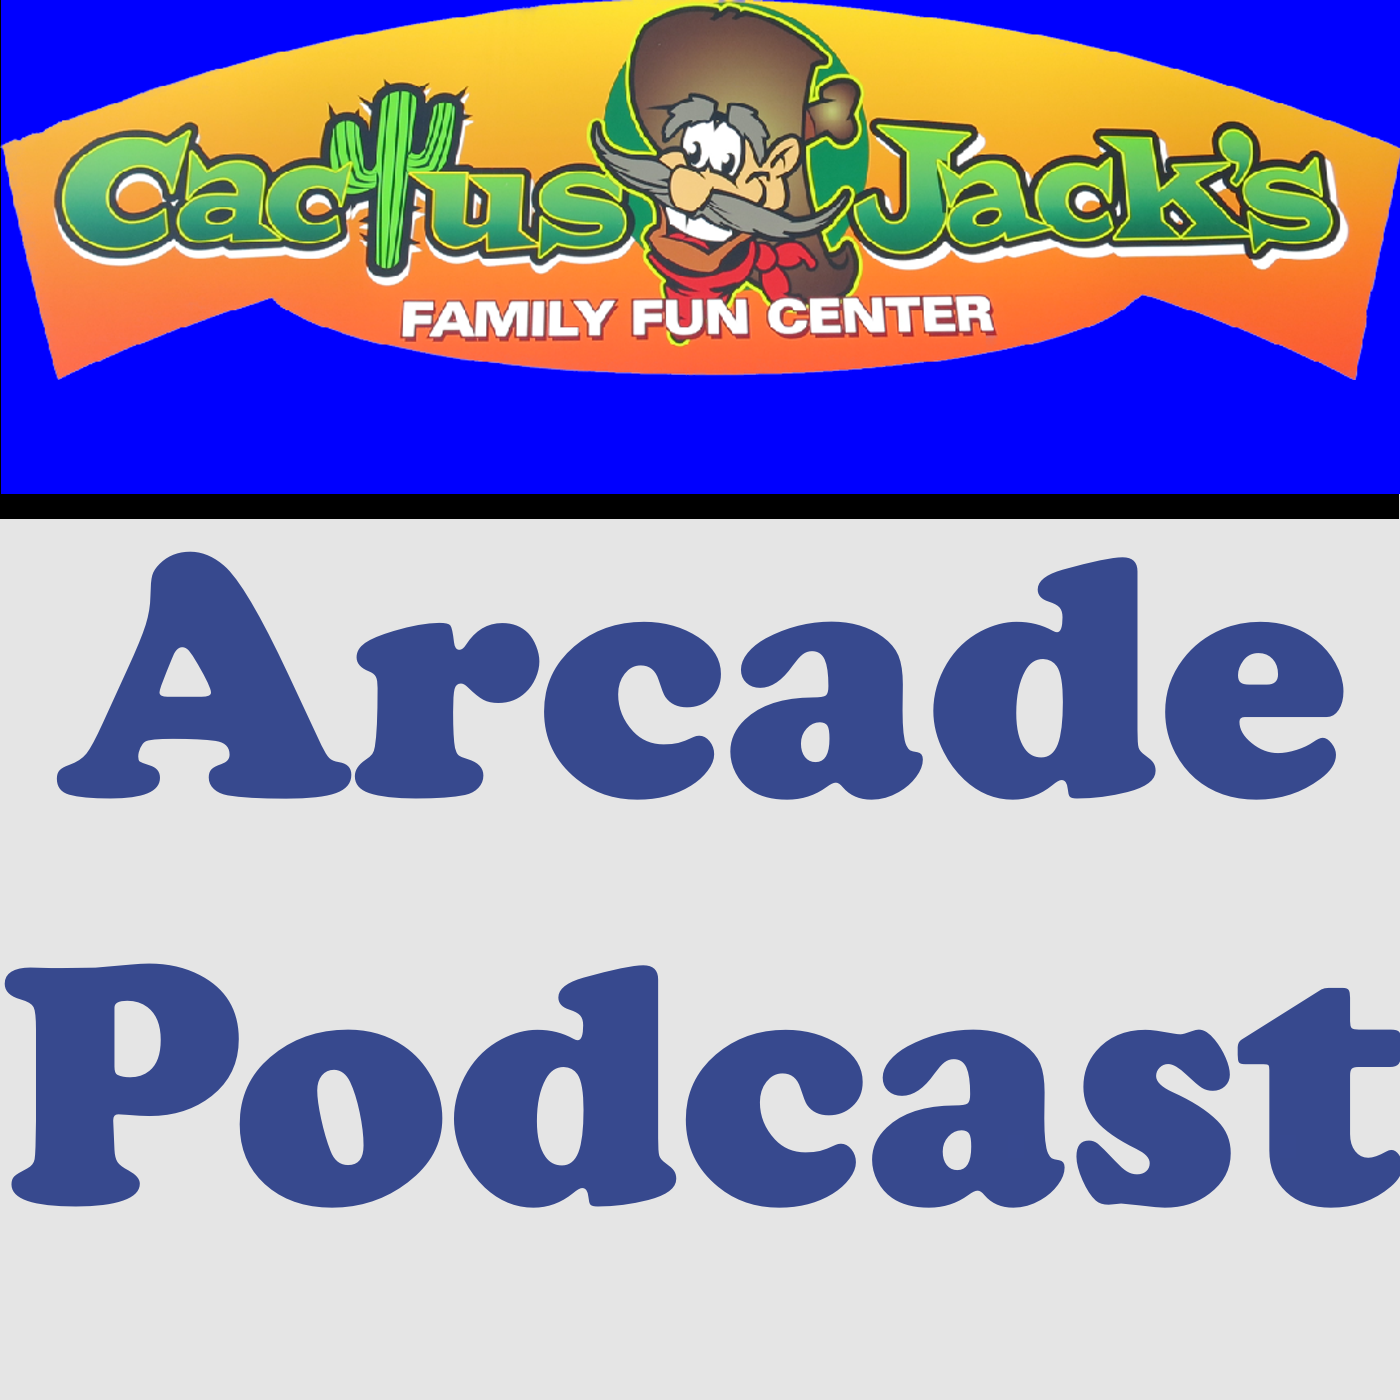 Cactus Jacks Arcade Podcast